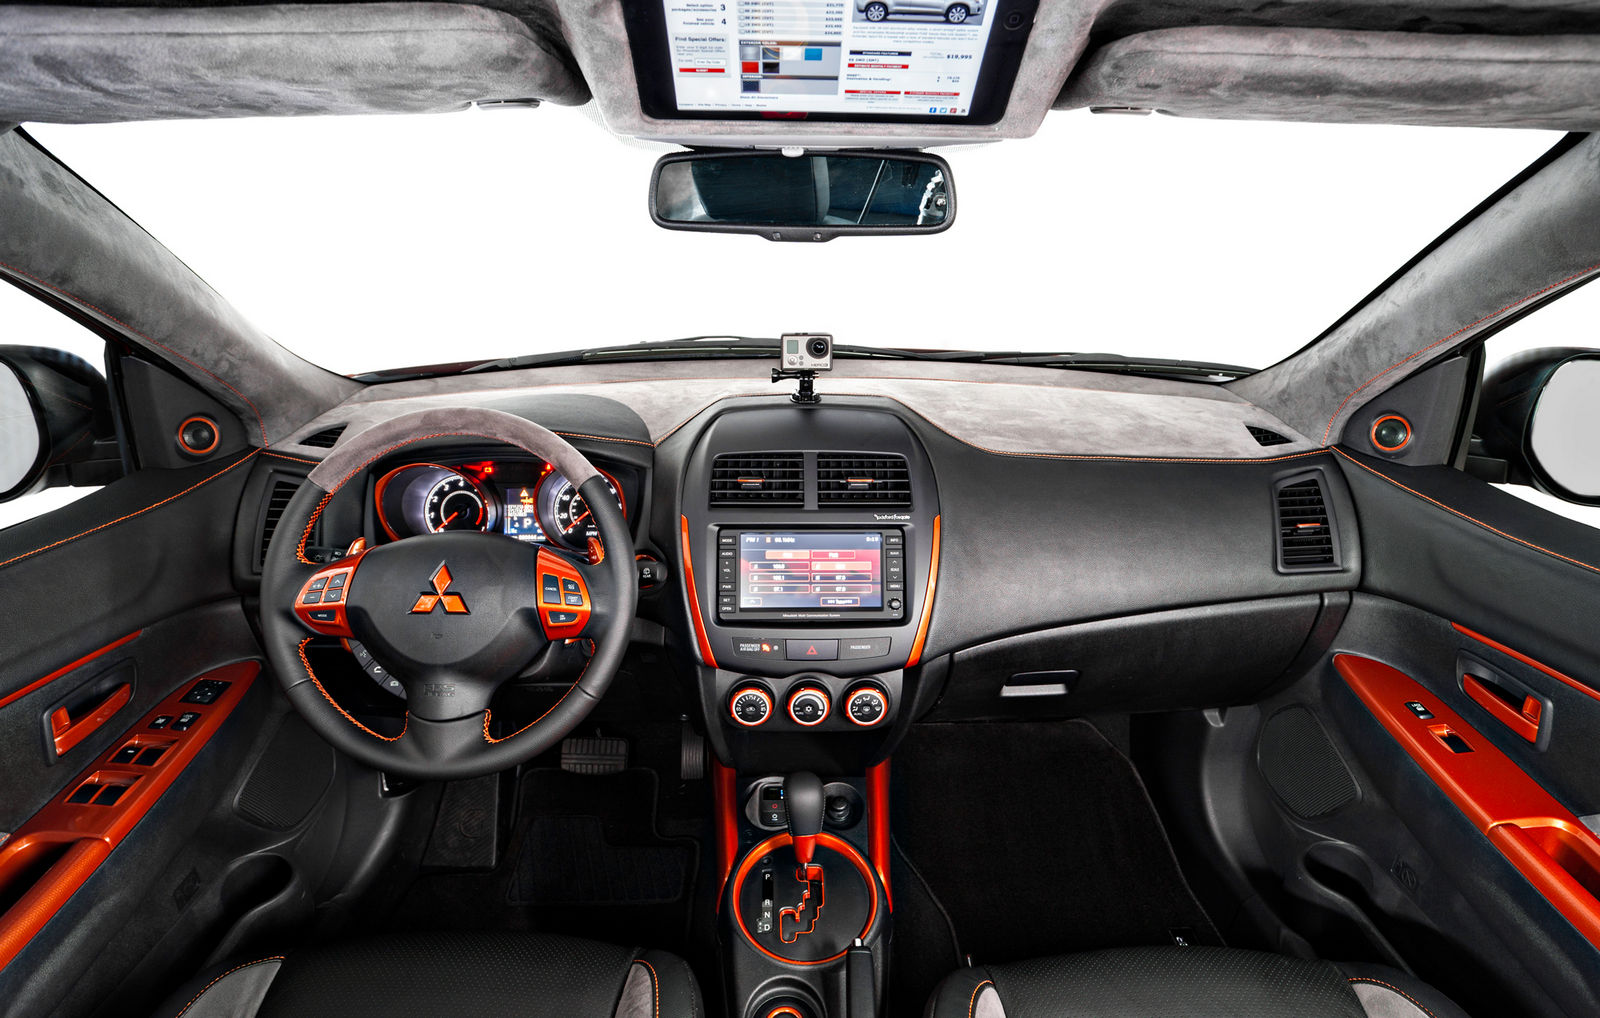 New 2013 mitsubishi outlander interior and picture apps directories